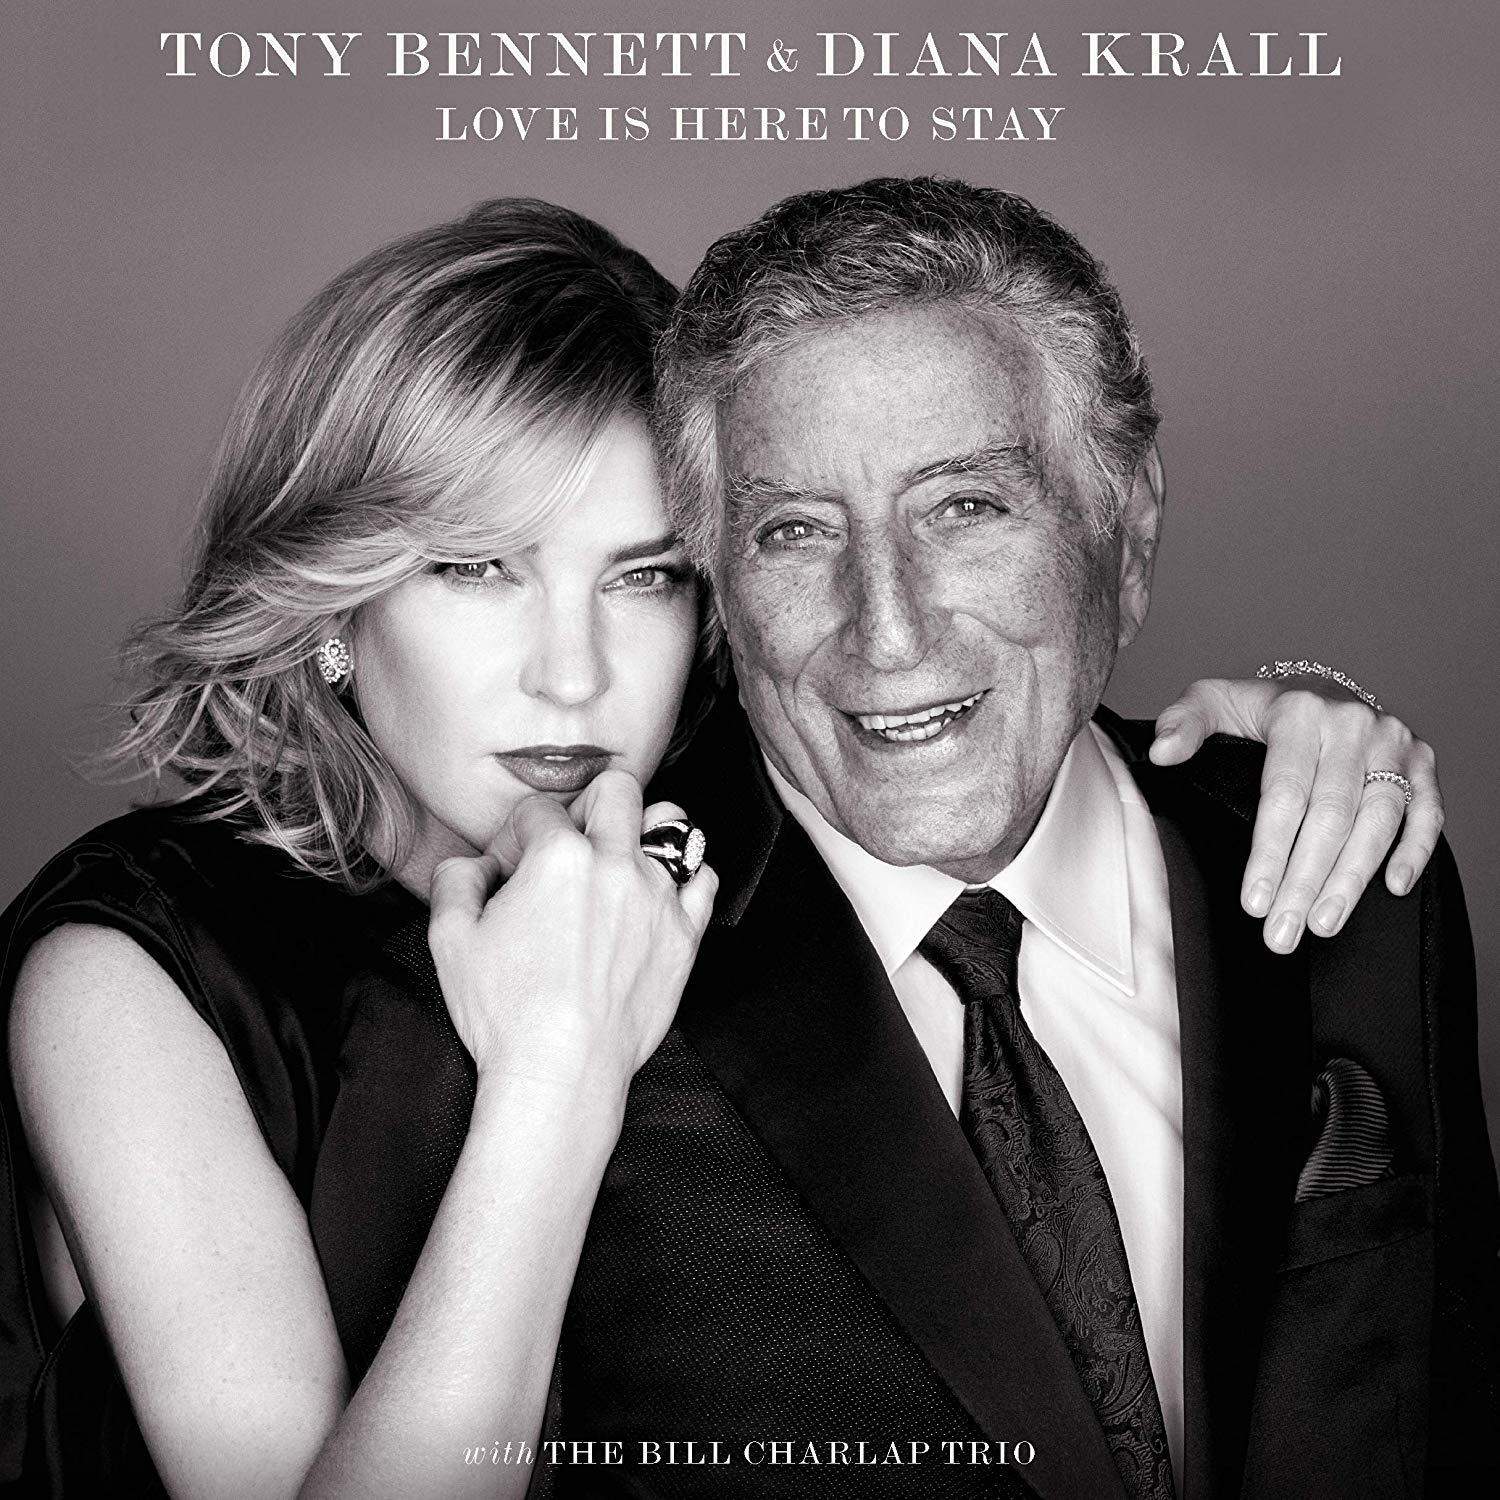 TONY BENNETT - Tony Bennett & Diana Krall : Love Is Here To Stay cover